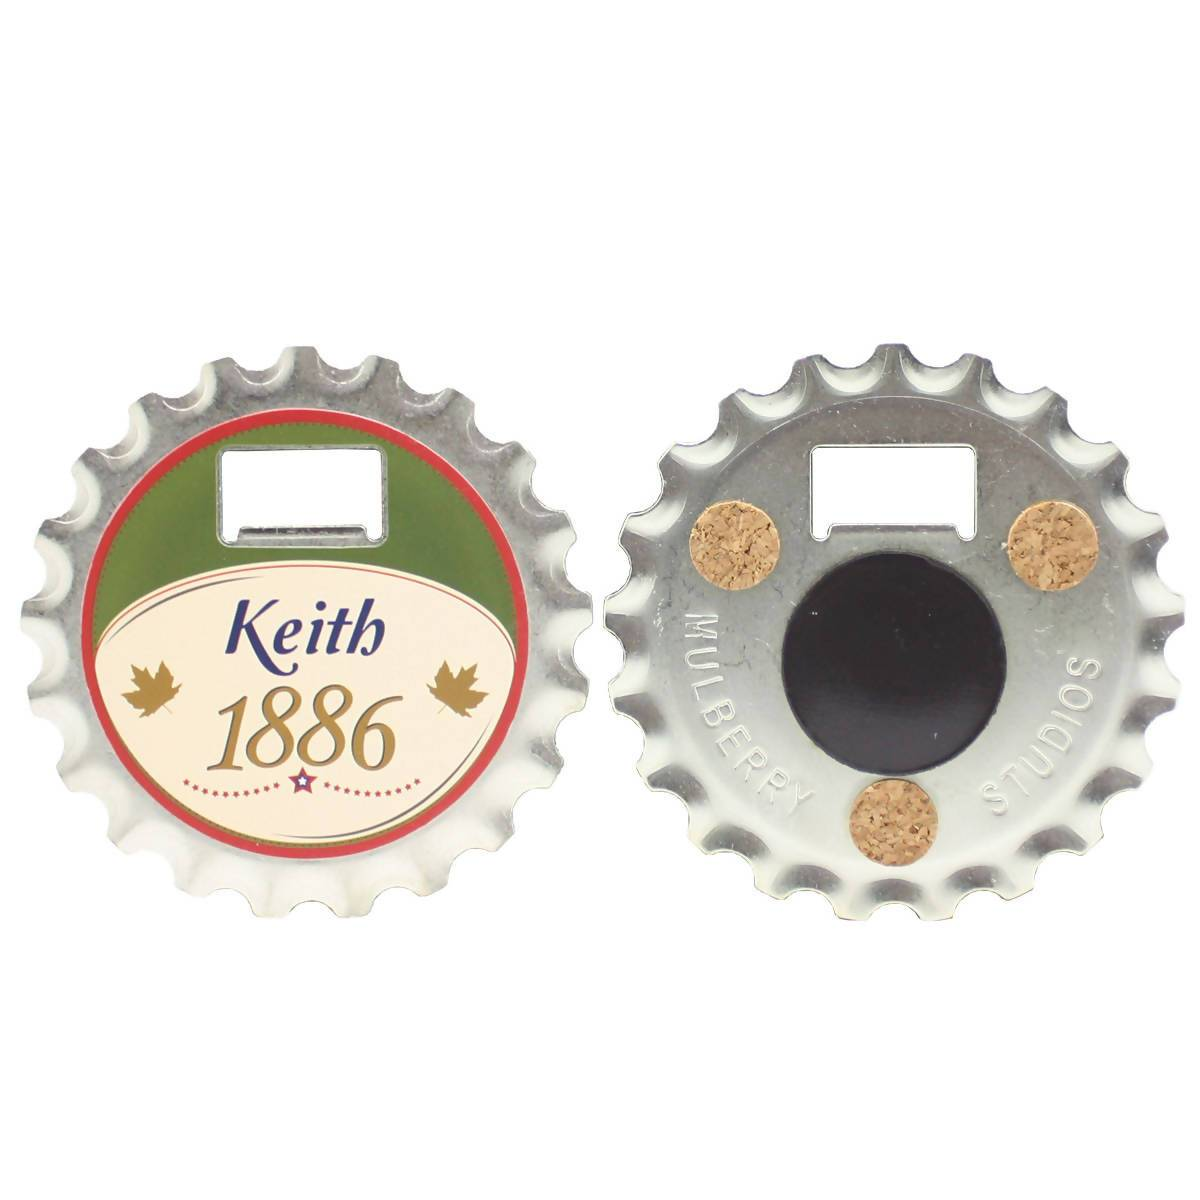 BOTTLE BUSTER - Best Bottle Opener : Keith - Bottle Openers - La Belle Collection - Naiise